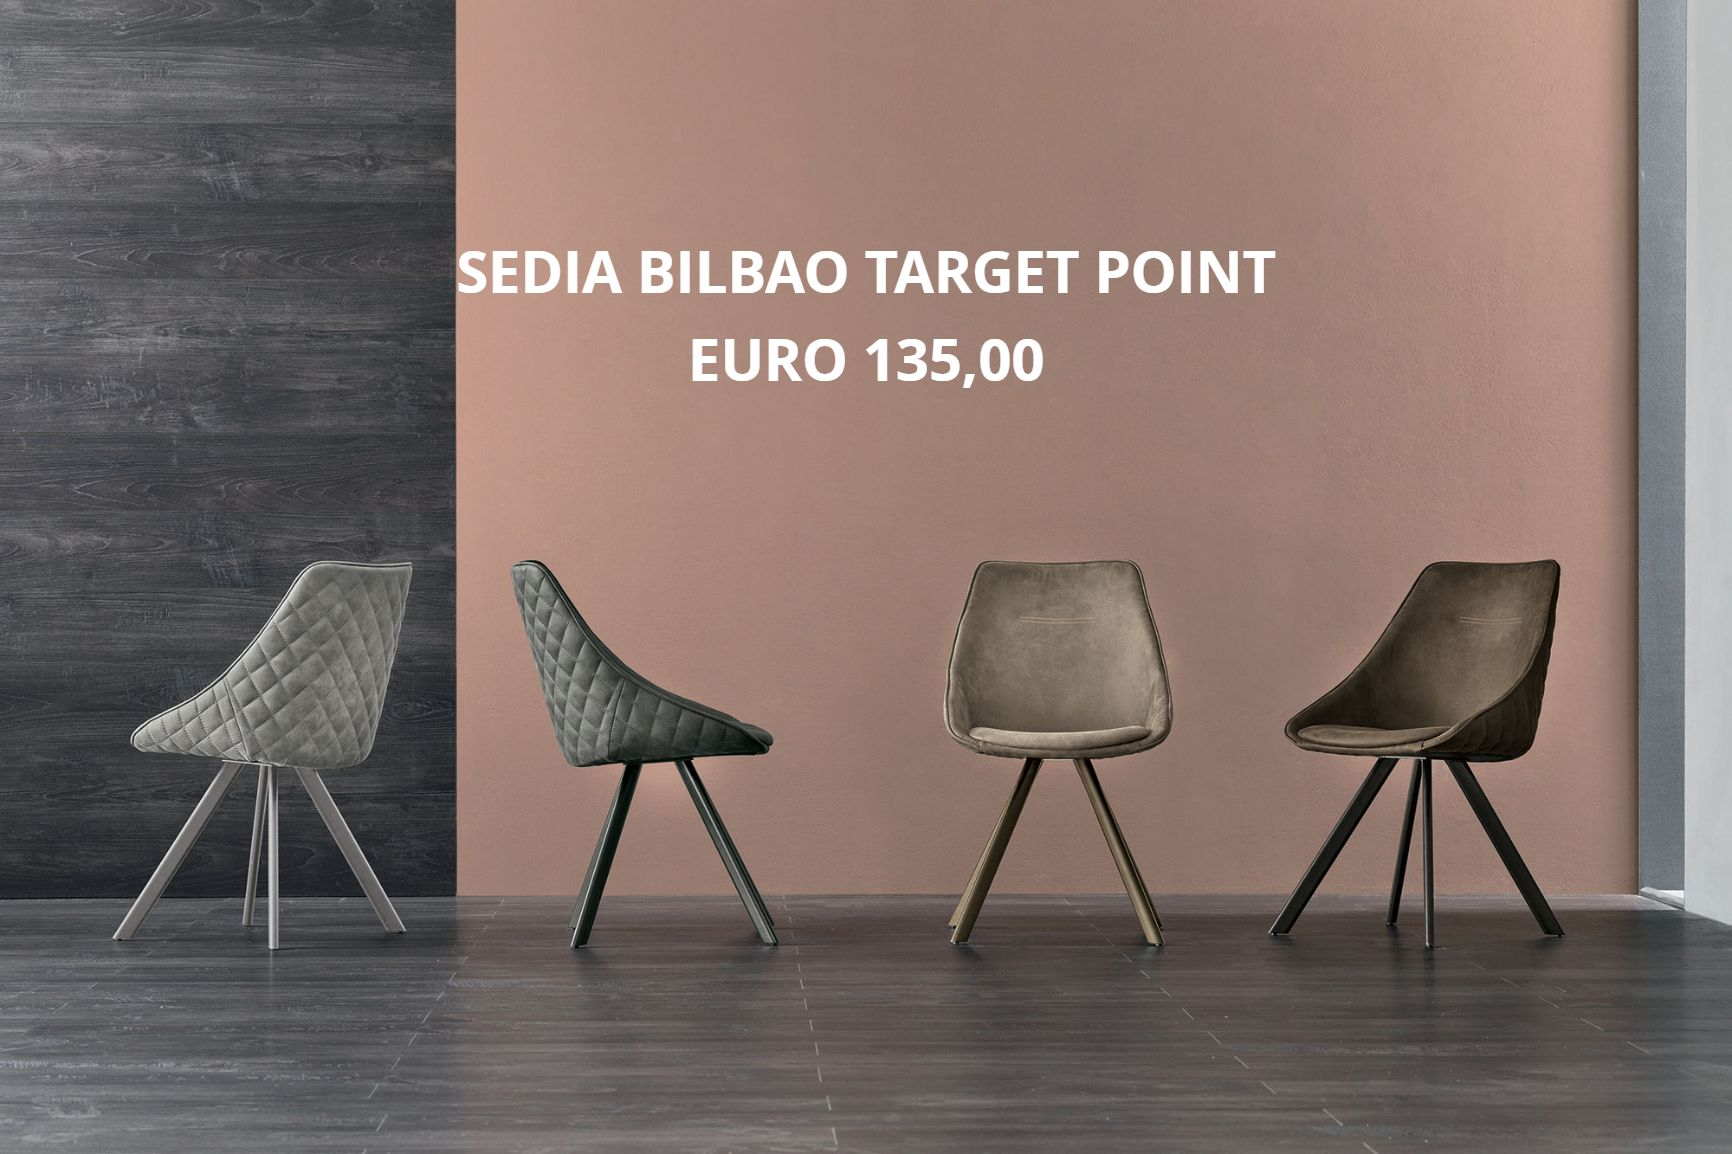 PRODUZIONE MADE IN ITALY TARGET POINT